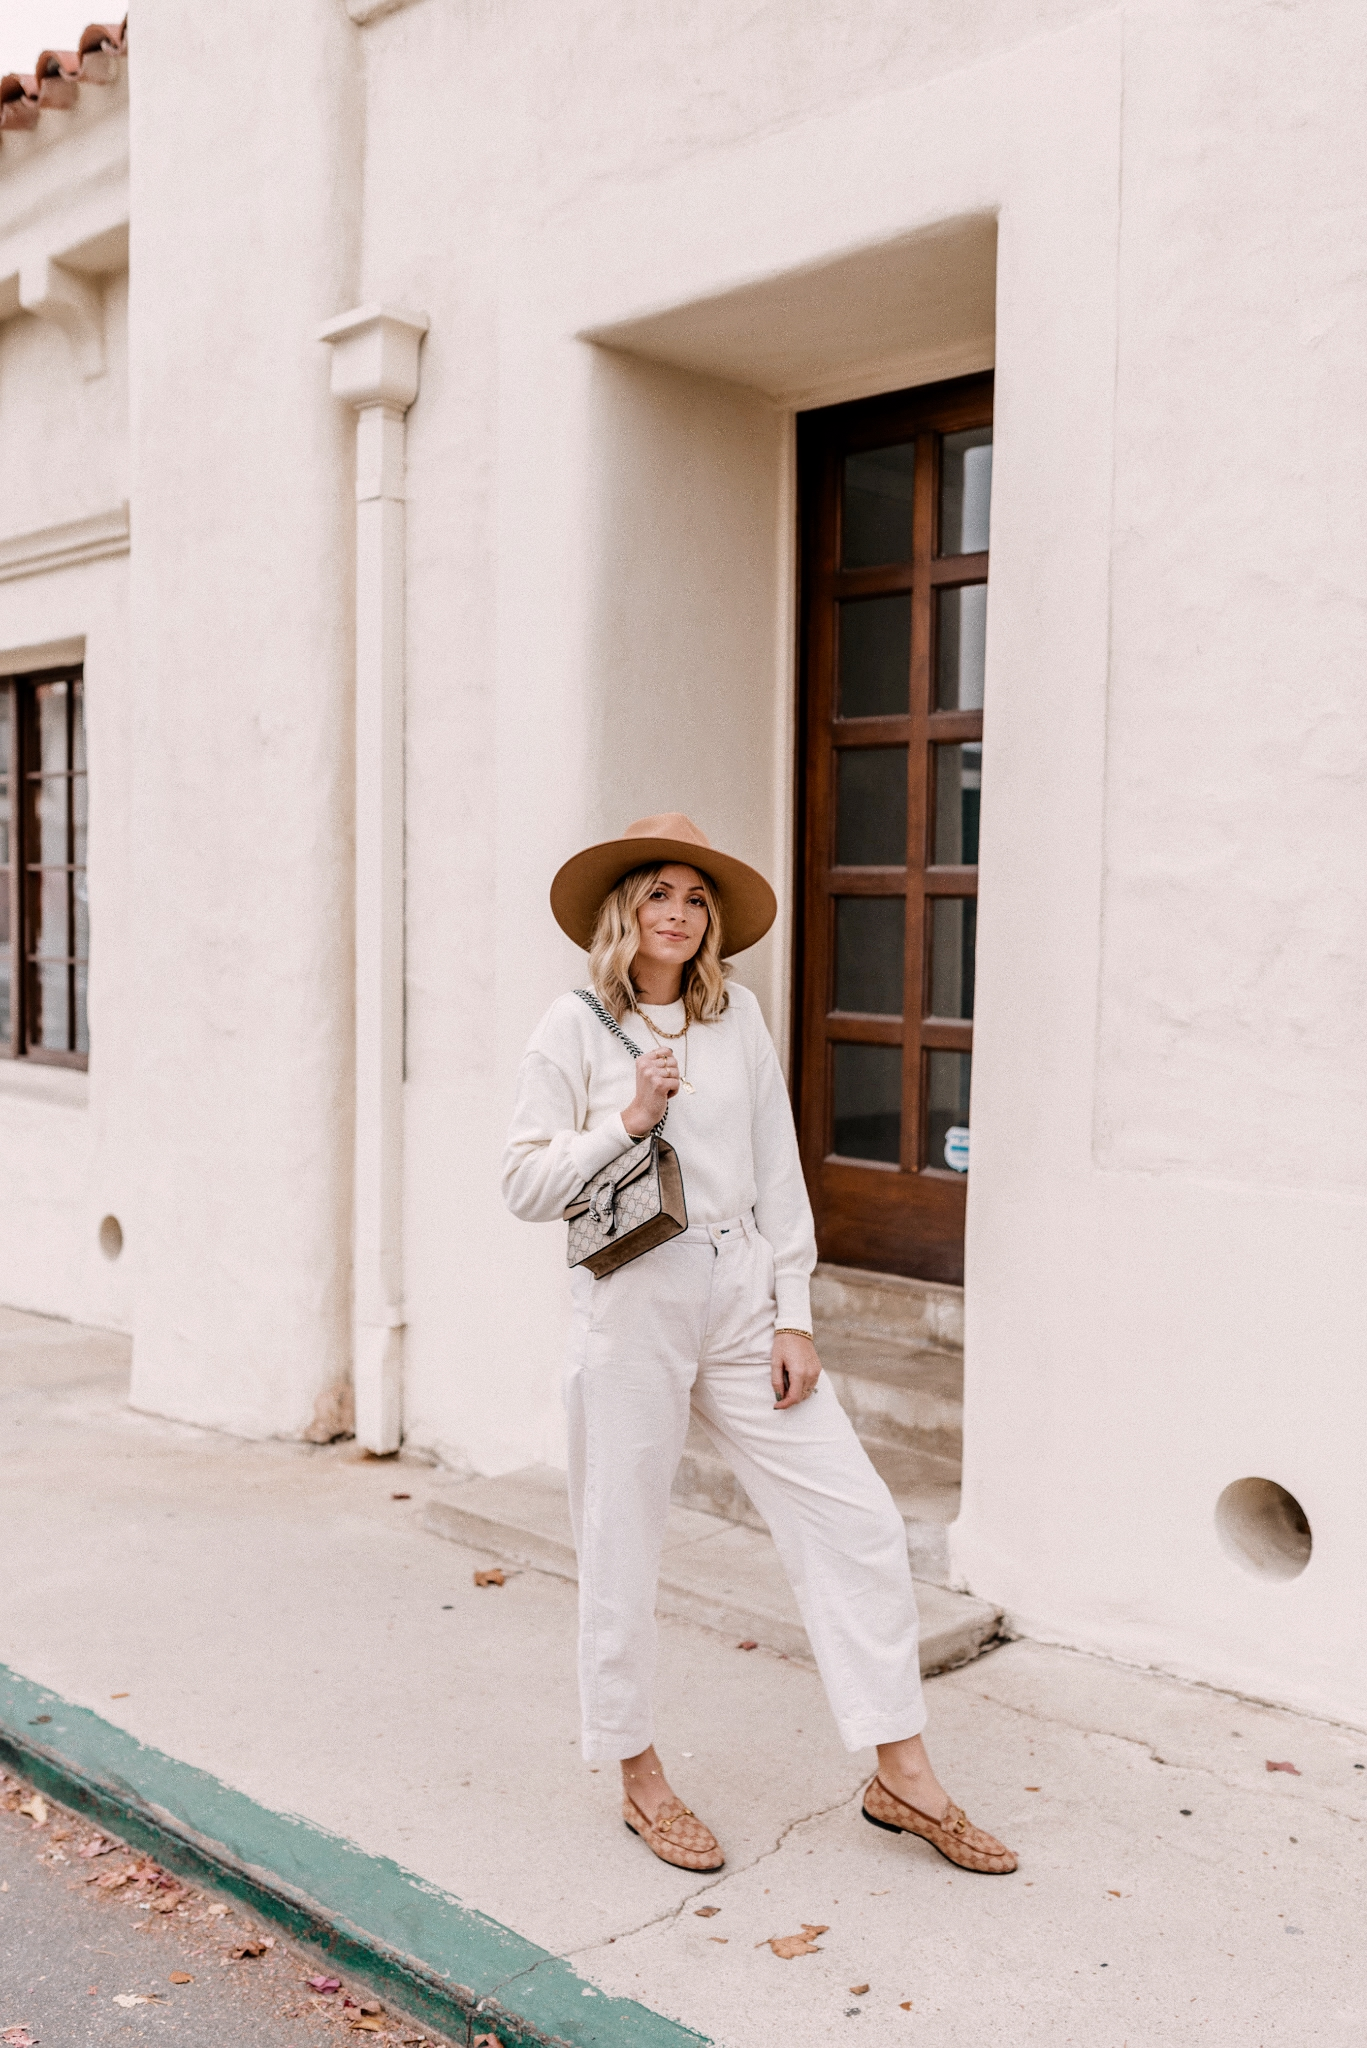 Fall fedora Hats |Fall fedora Hats |Fall fedora Hats | Fedora Hats by popular San Diego fashion blog, Navy Grace: image of a woman wearing a Madewell Brushed Knit Puff-Sleeve Top, Everlane The Arc Canvas Pant,Gucci Women's Jordaan GG Canvas Loafers and Free People Rancher Felt Hat.